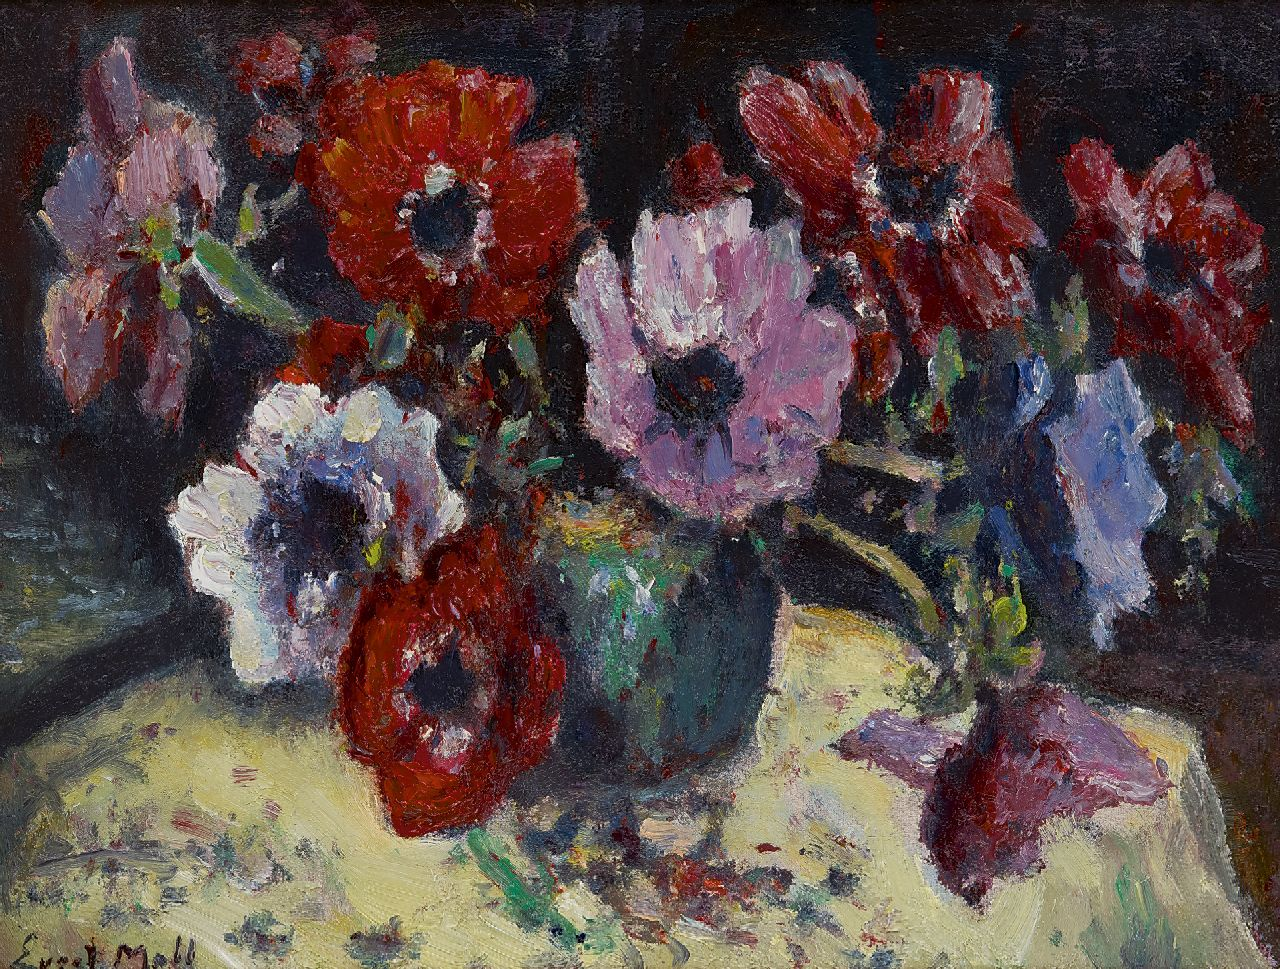 Moll E.  | Evert Moll | Paintings offered for sale | Anemones, oil on canvas 30.5 x 40.1 cm, signed l.l.